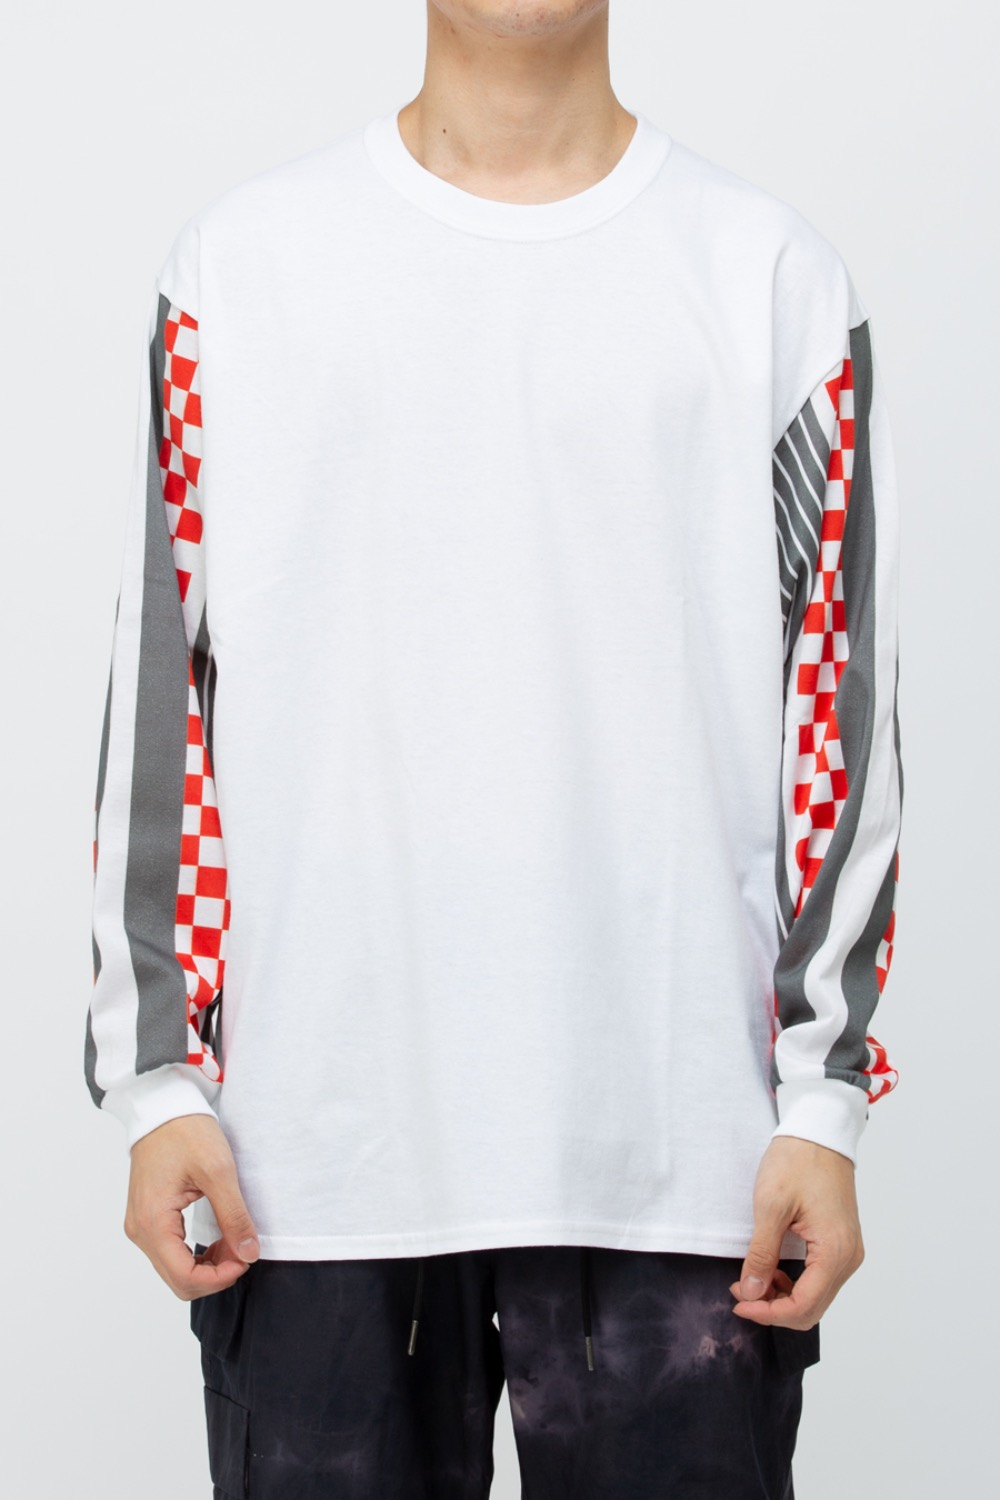 N STRIPE SLEEVE TEE WHITE/GREY